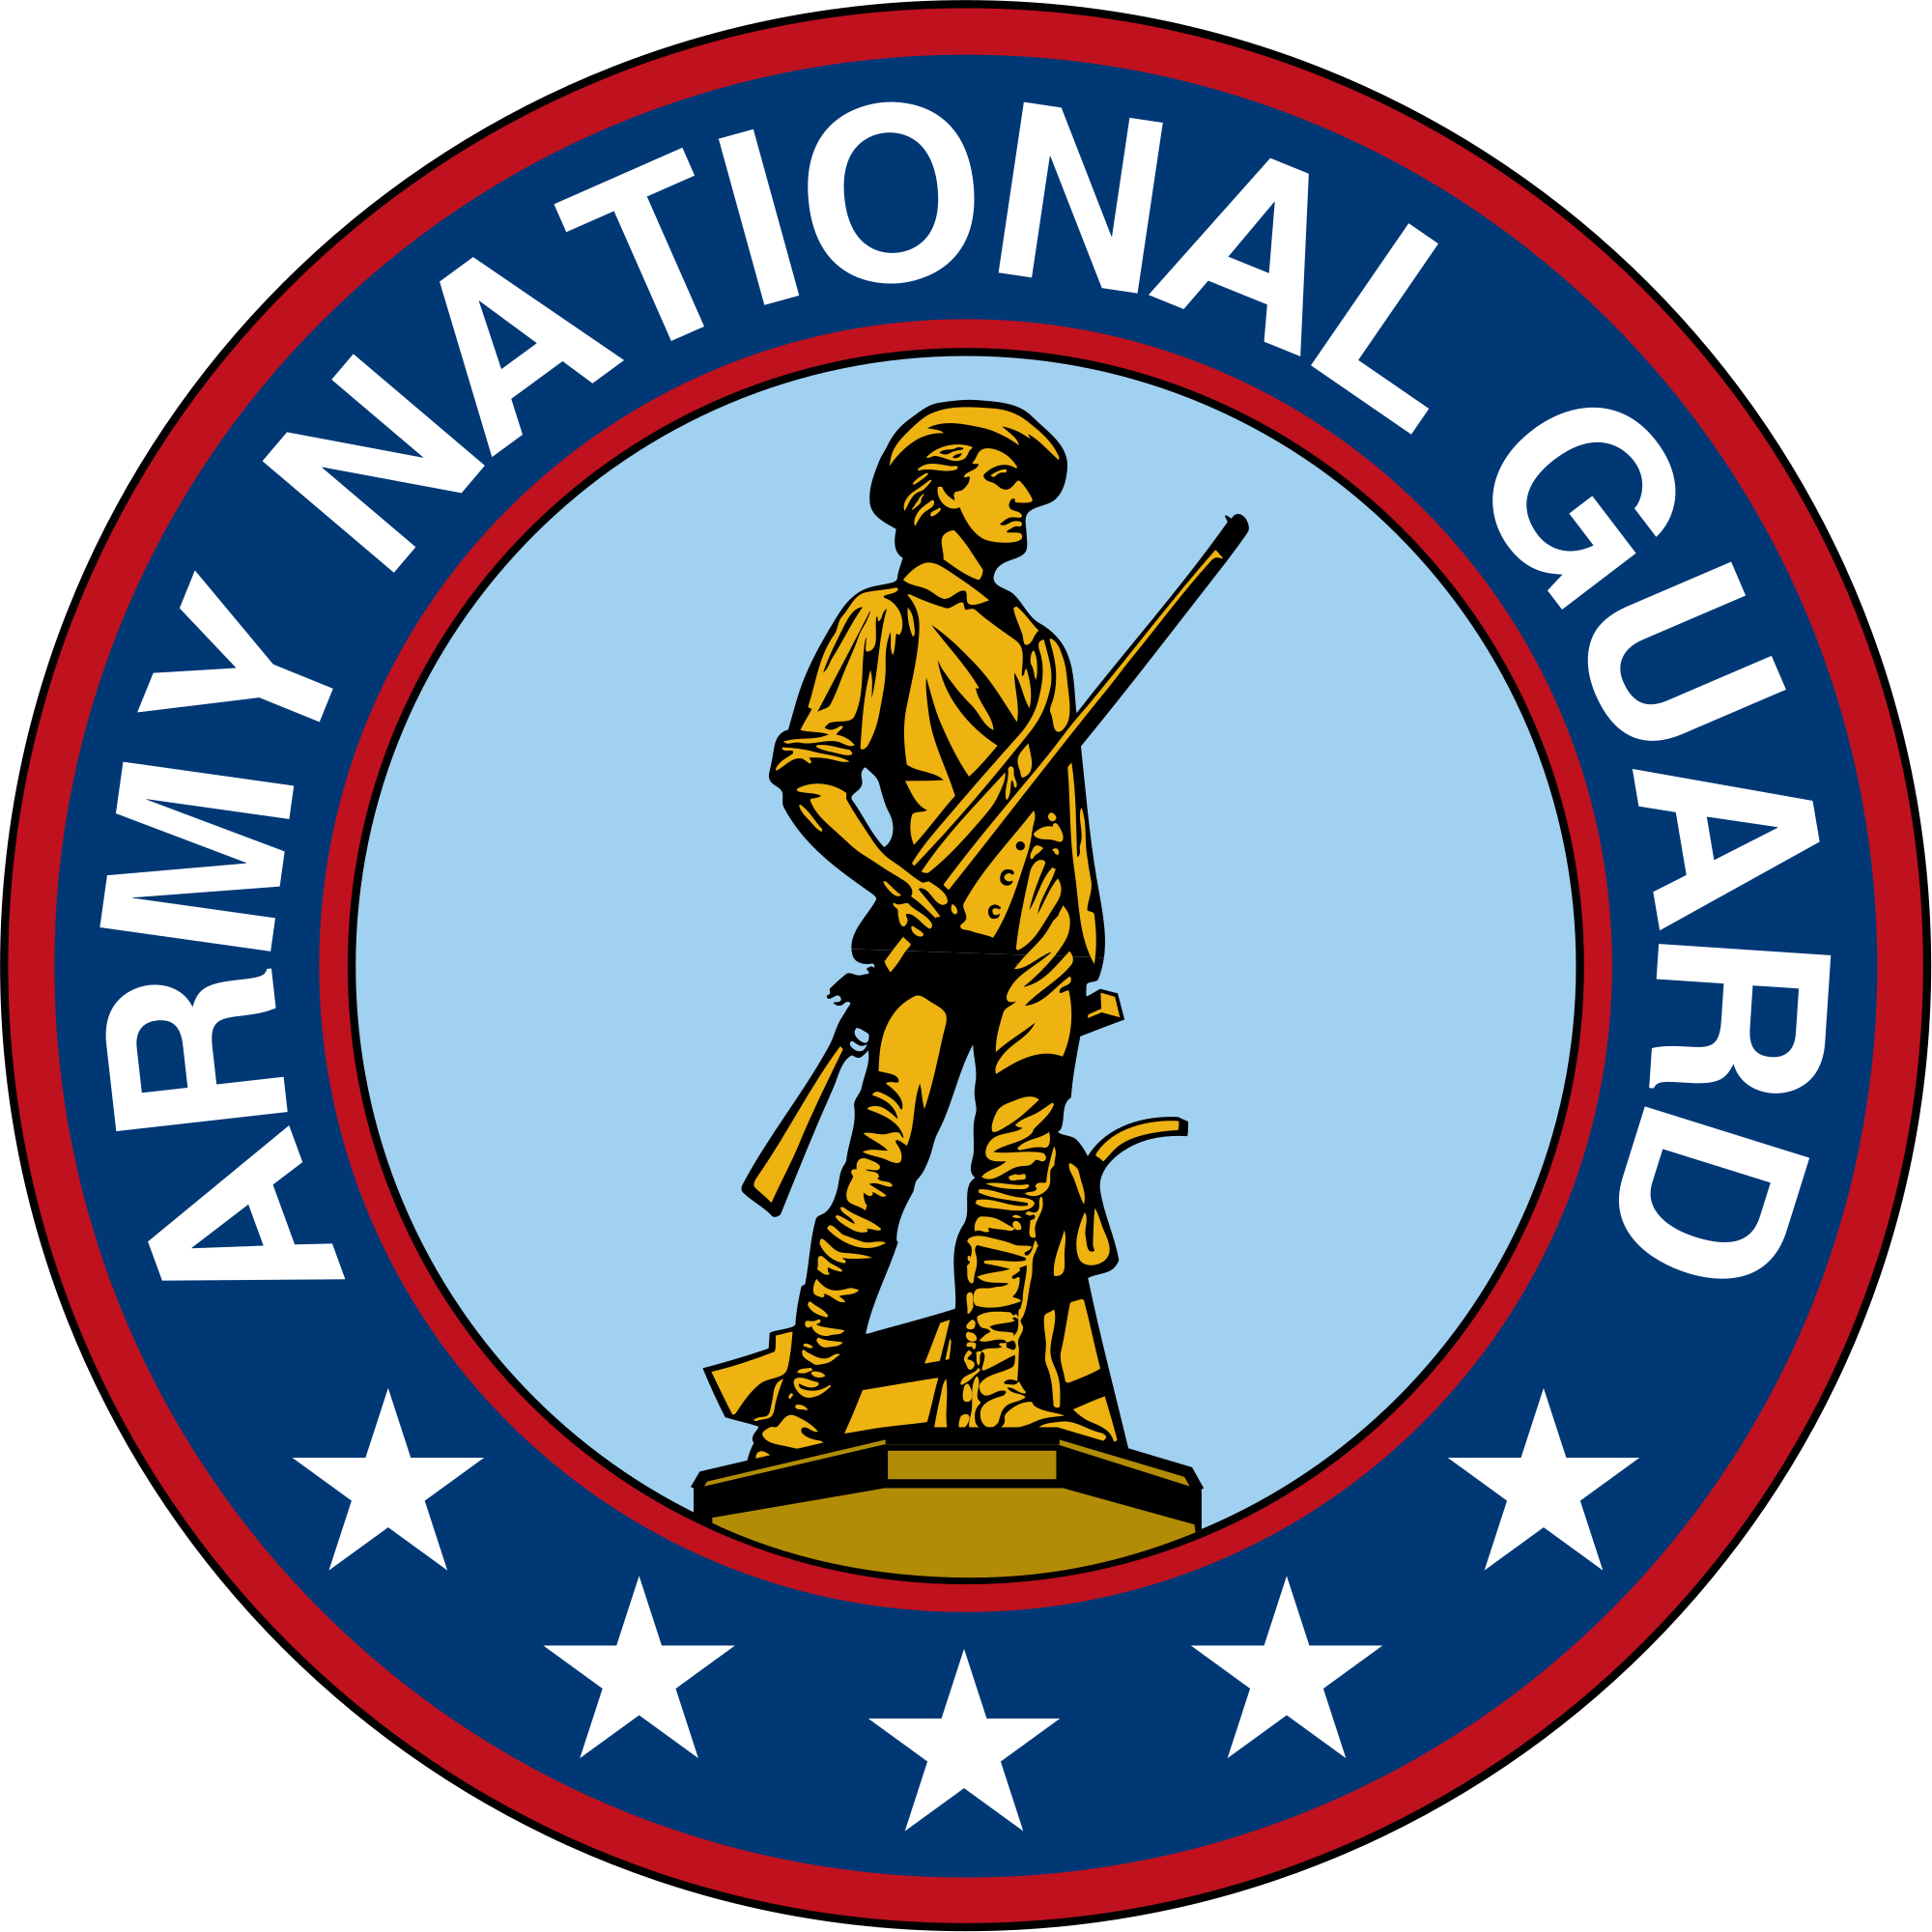 2000x2000 Fileseal Of The United States Army National Guard.svg